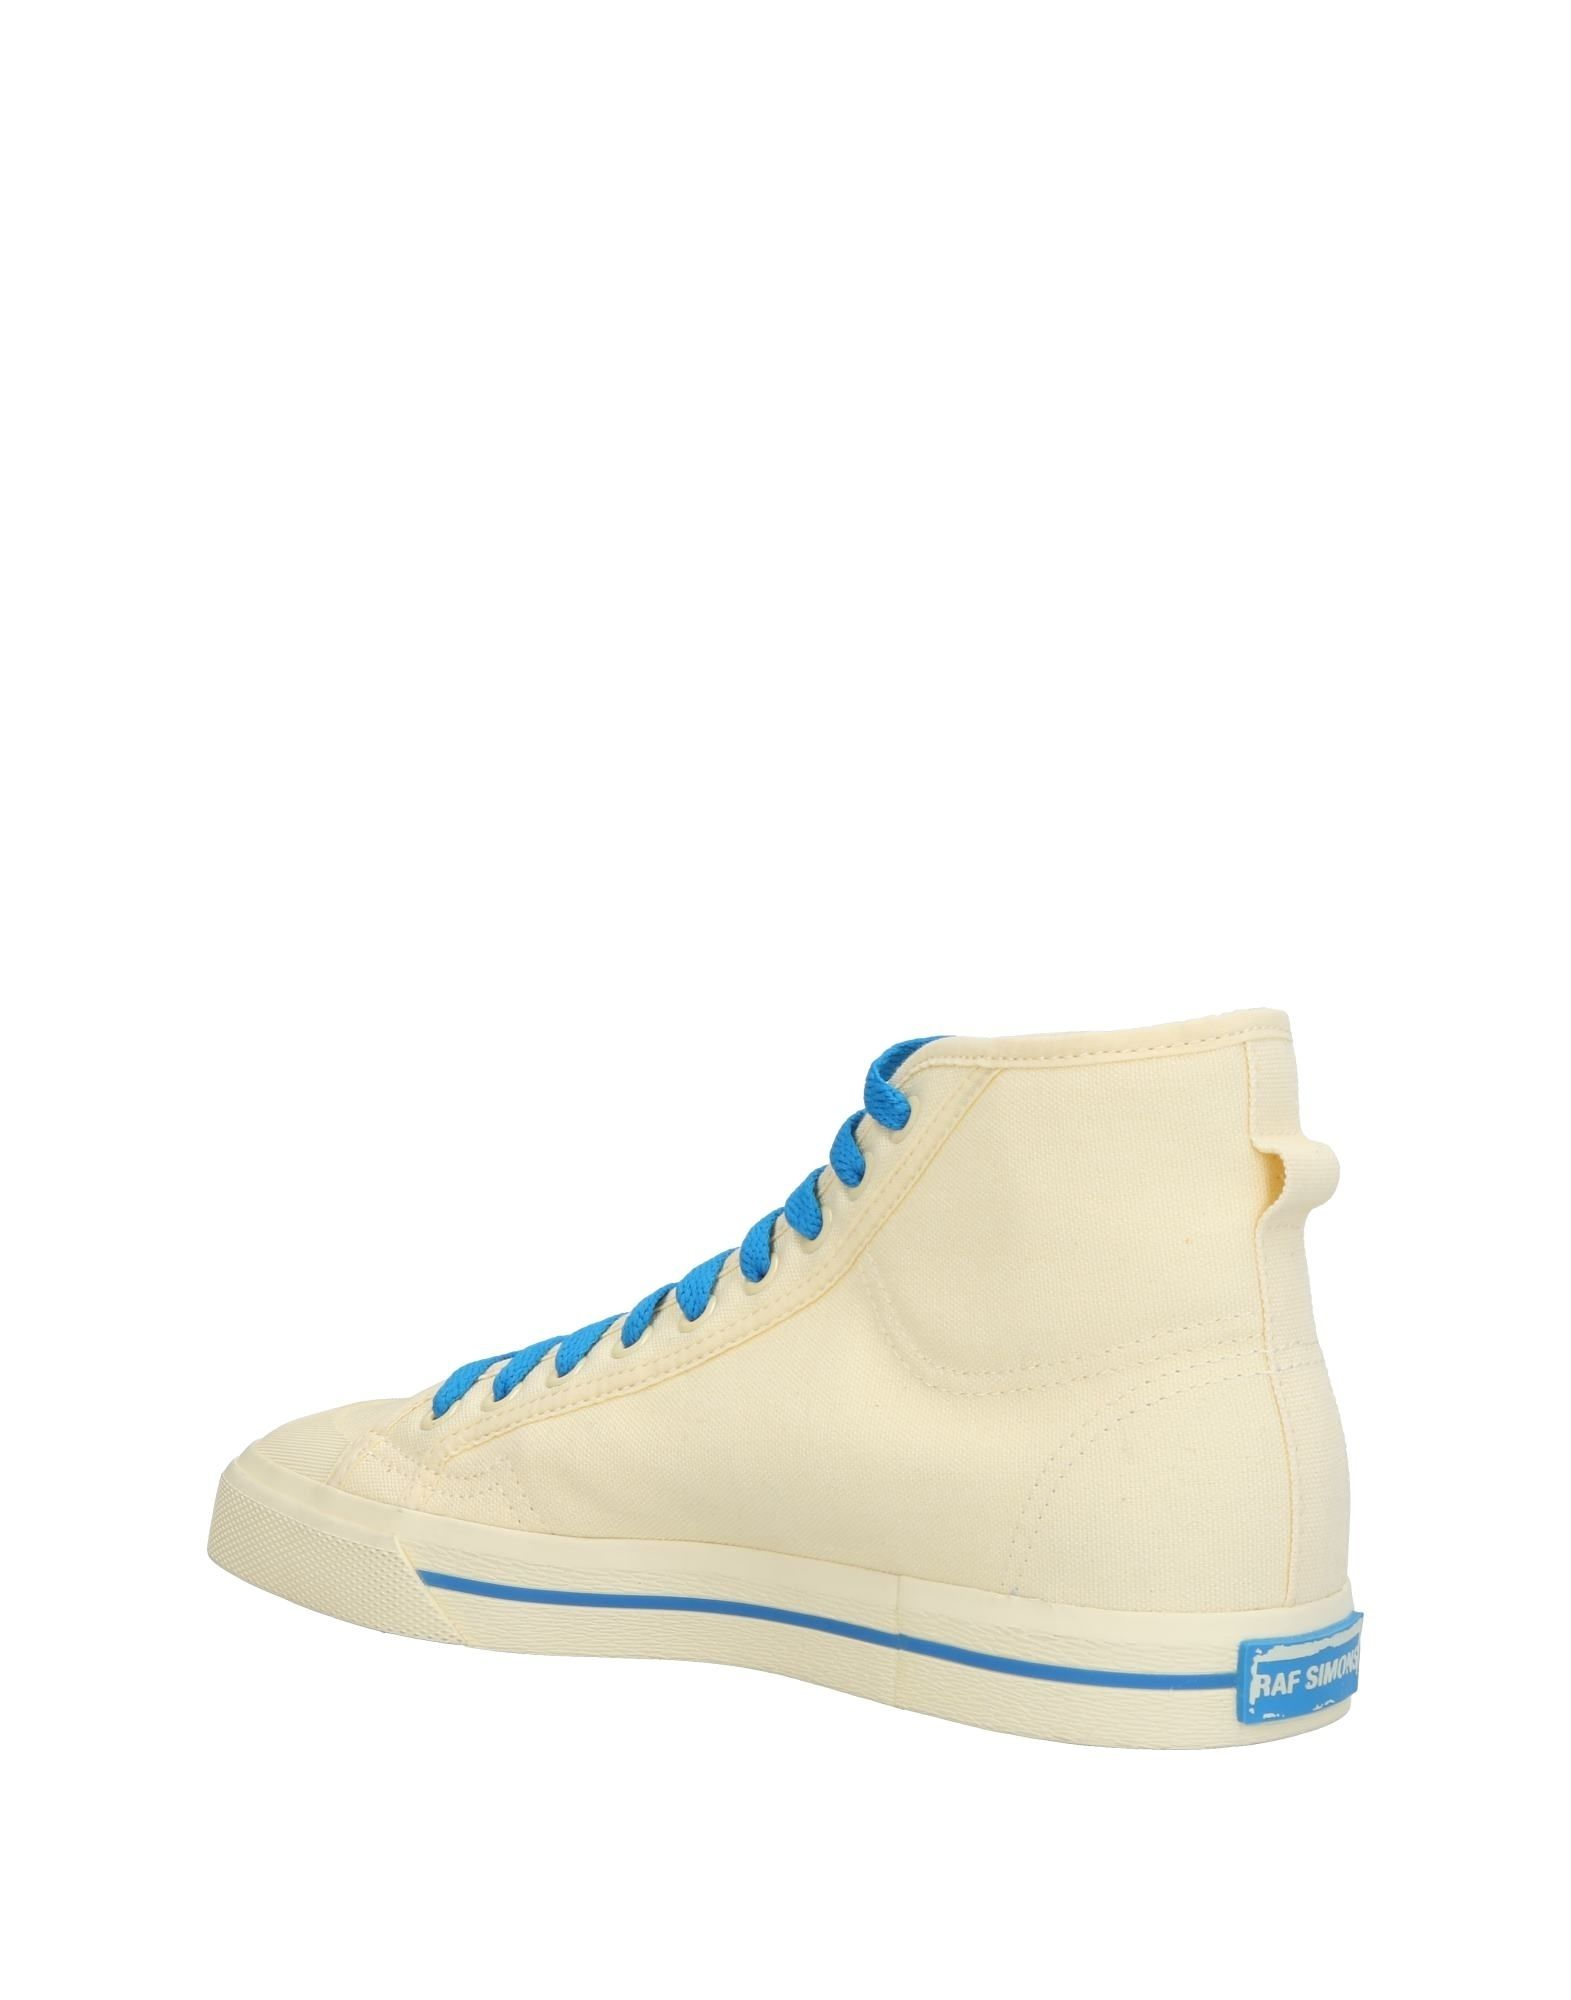 Sneakers Adidas By Raf Simons Homme - Sneakers Adidas By Raf Simons sur